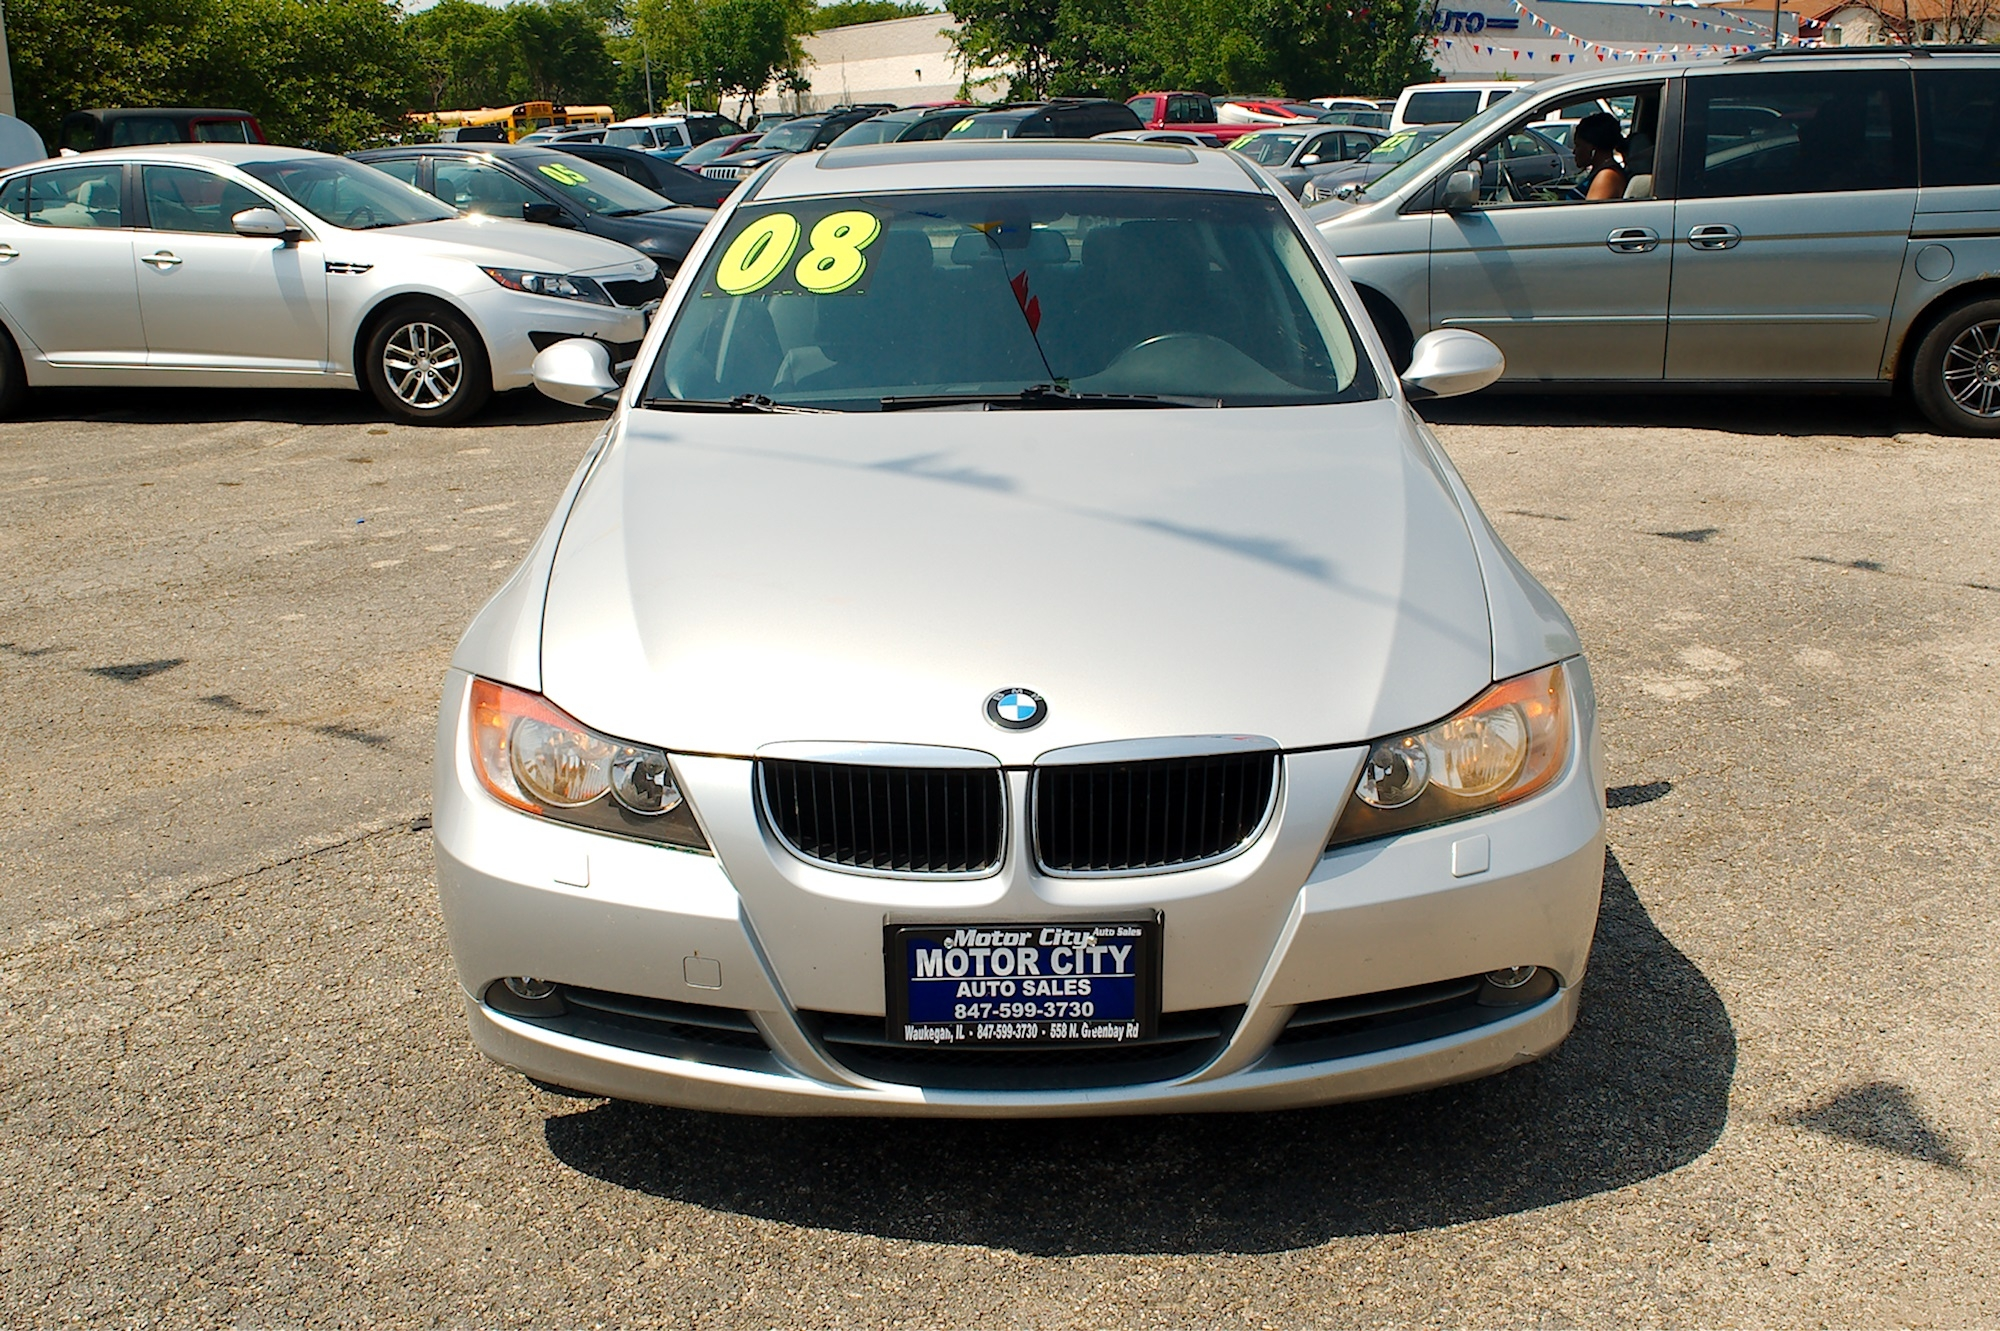 2008 BMW 328xi Gray Sedan Used Car Sale Gurnee Kenosha Mchenry Chicago Illinois